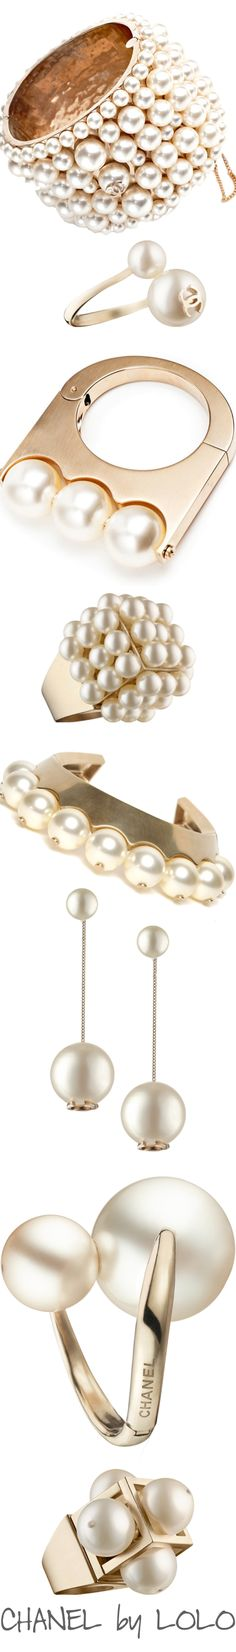 CHANEL PEARLS §